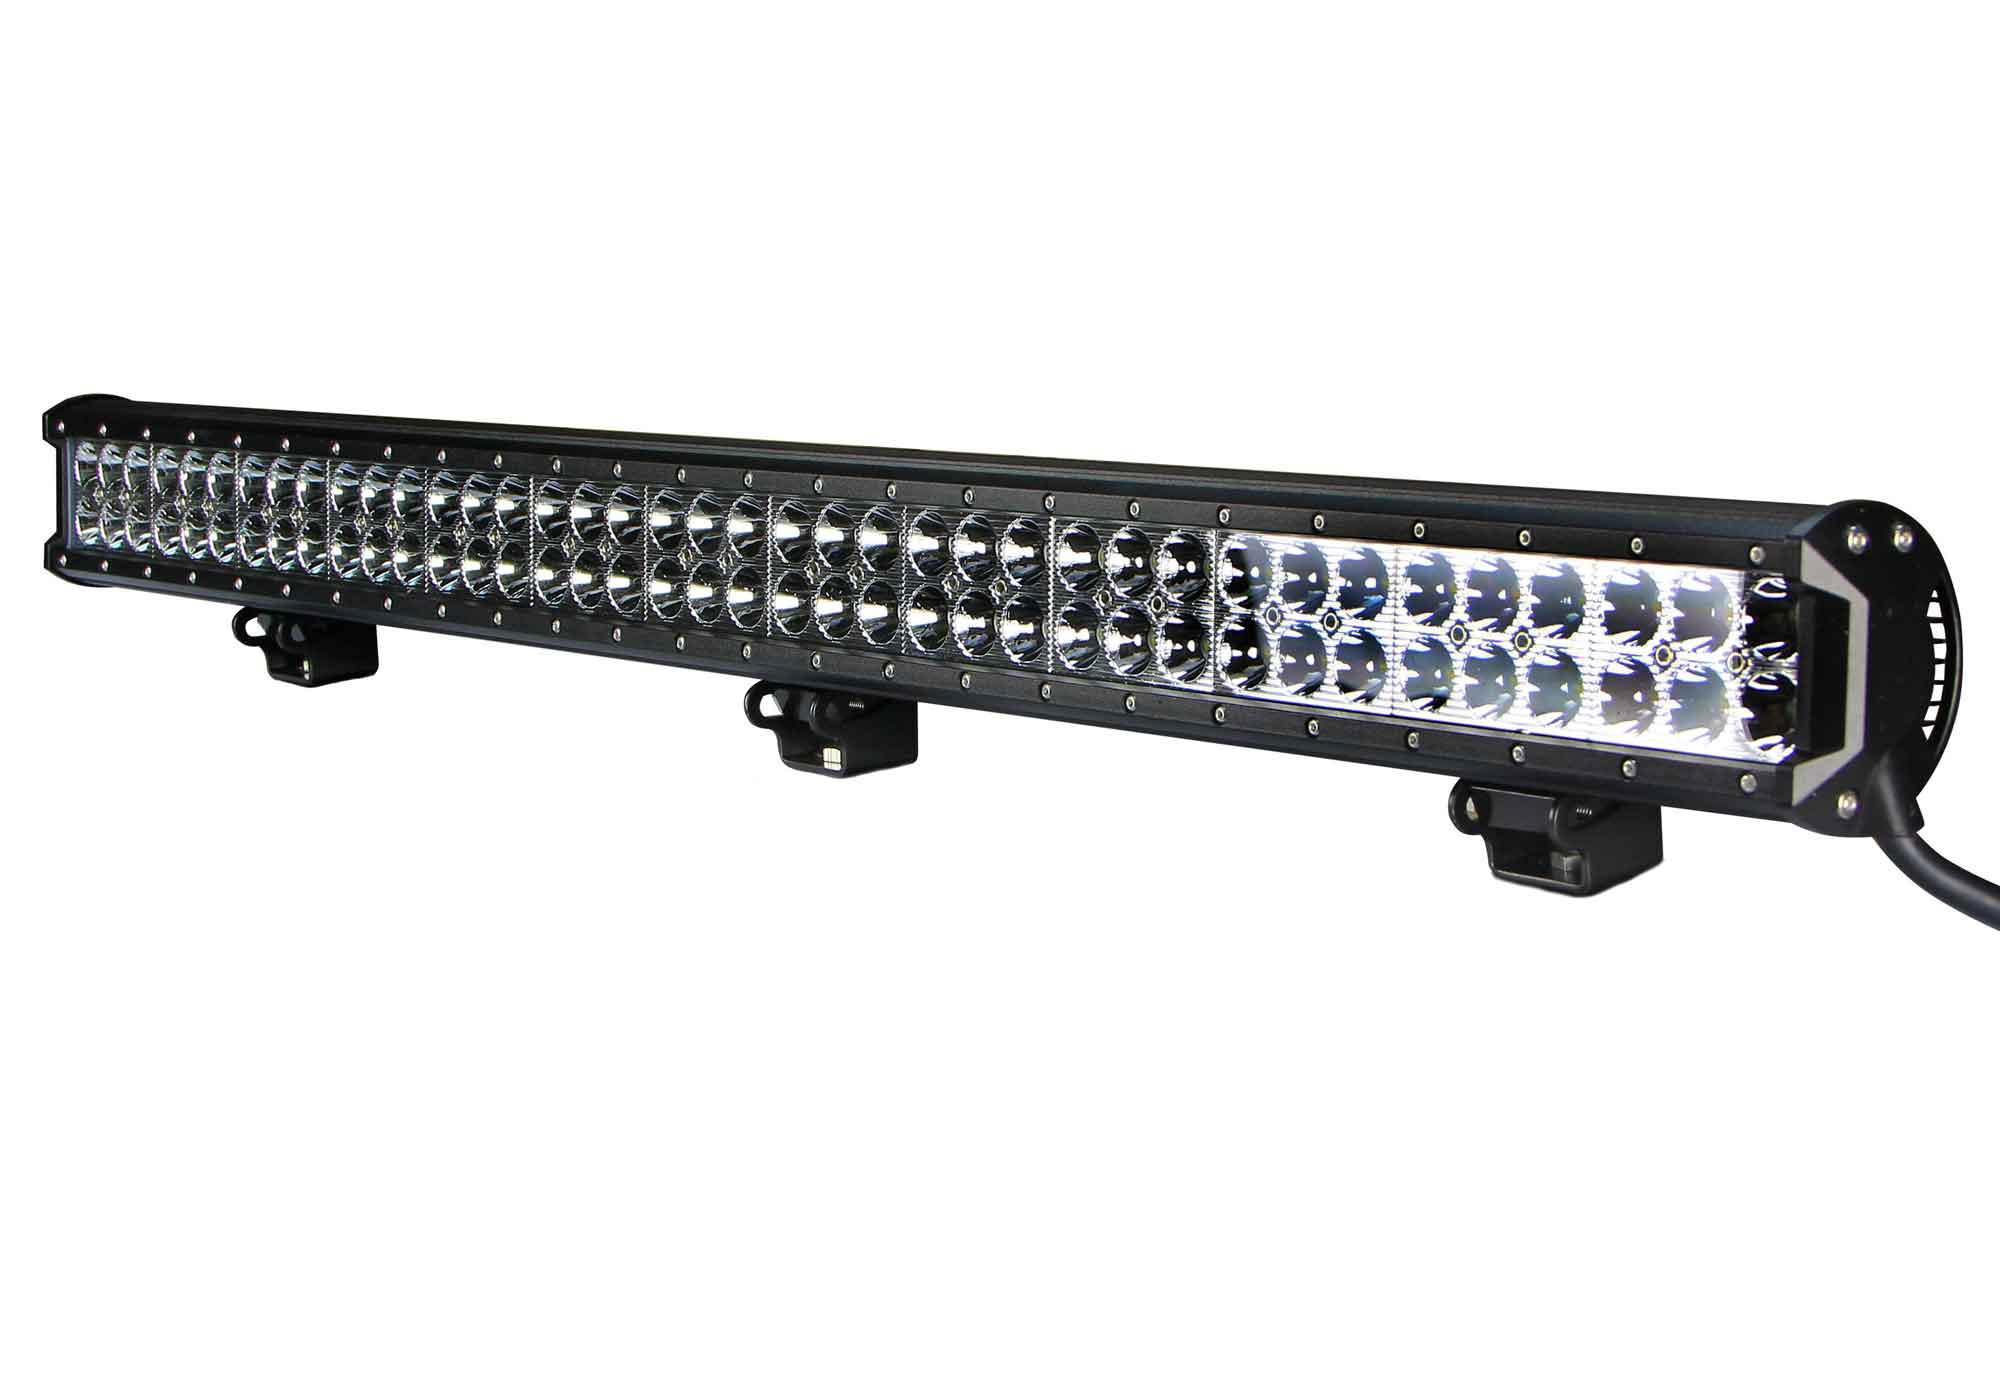 vortex series led light bar 36 inch 234 watt combo. Black Bedroom Furniture Sets. Home Design Ideas